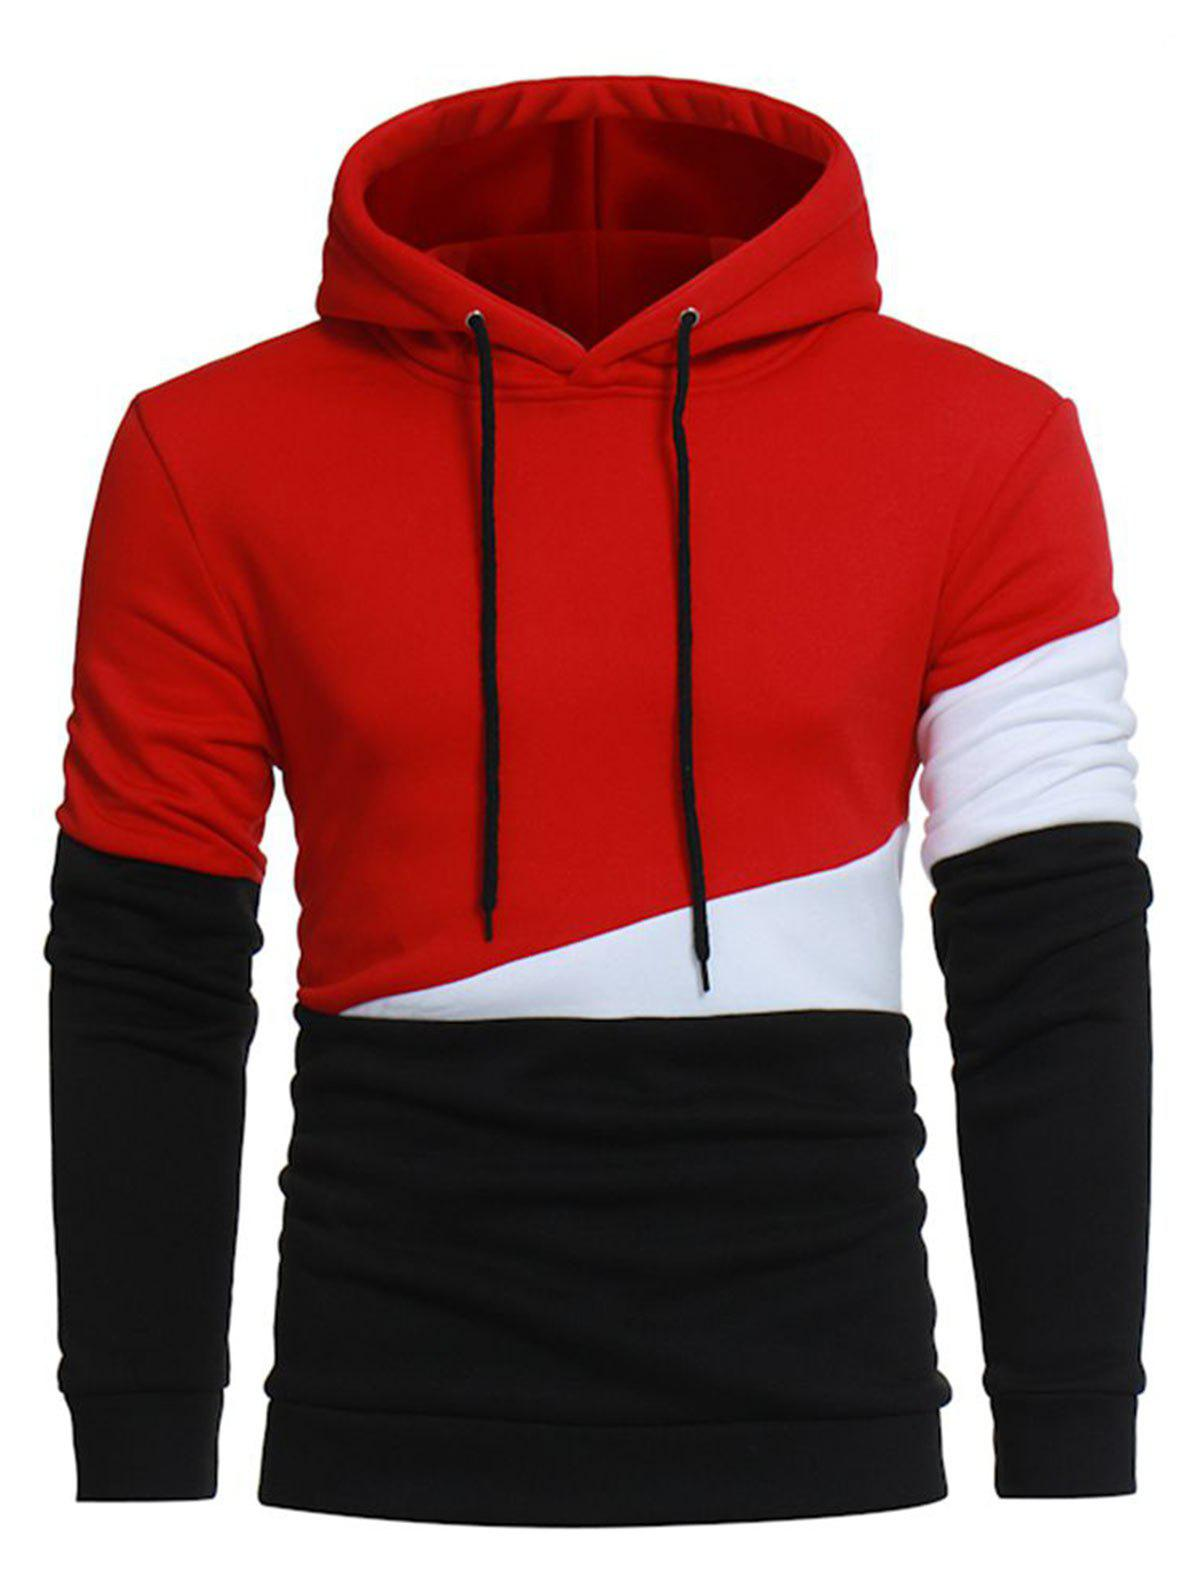 Color Block Drawstring Pullover Fleece HoodieMEN<br><br>Size: M; Color: RED; Material: Cotton,Polyester; Shirt Length: Regular; Sleeve Length: Full; Style: Fashion; Weight: 0.5000kg; Package Contents: 1 x Hoodie;